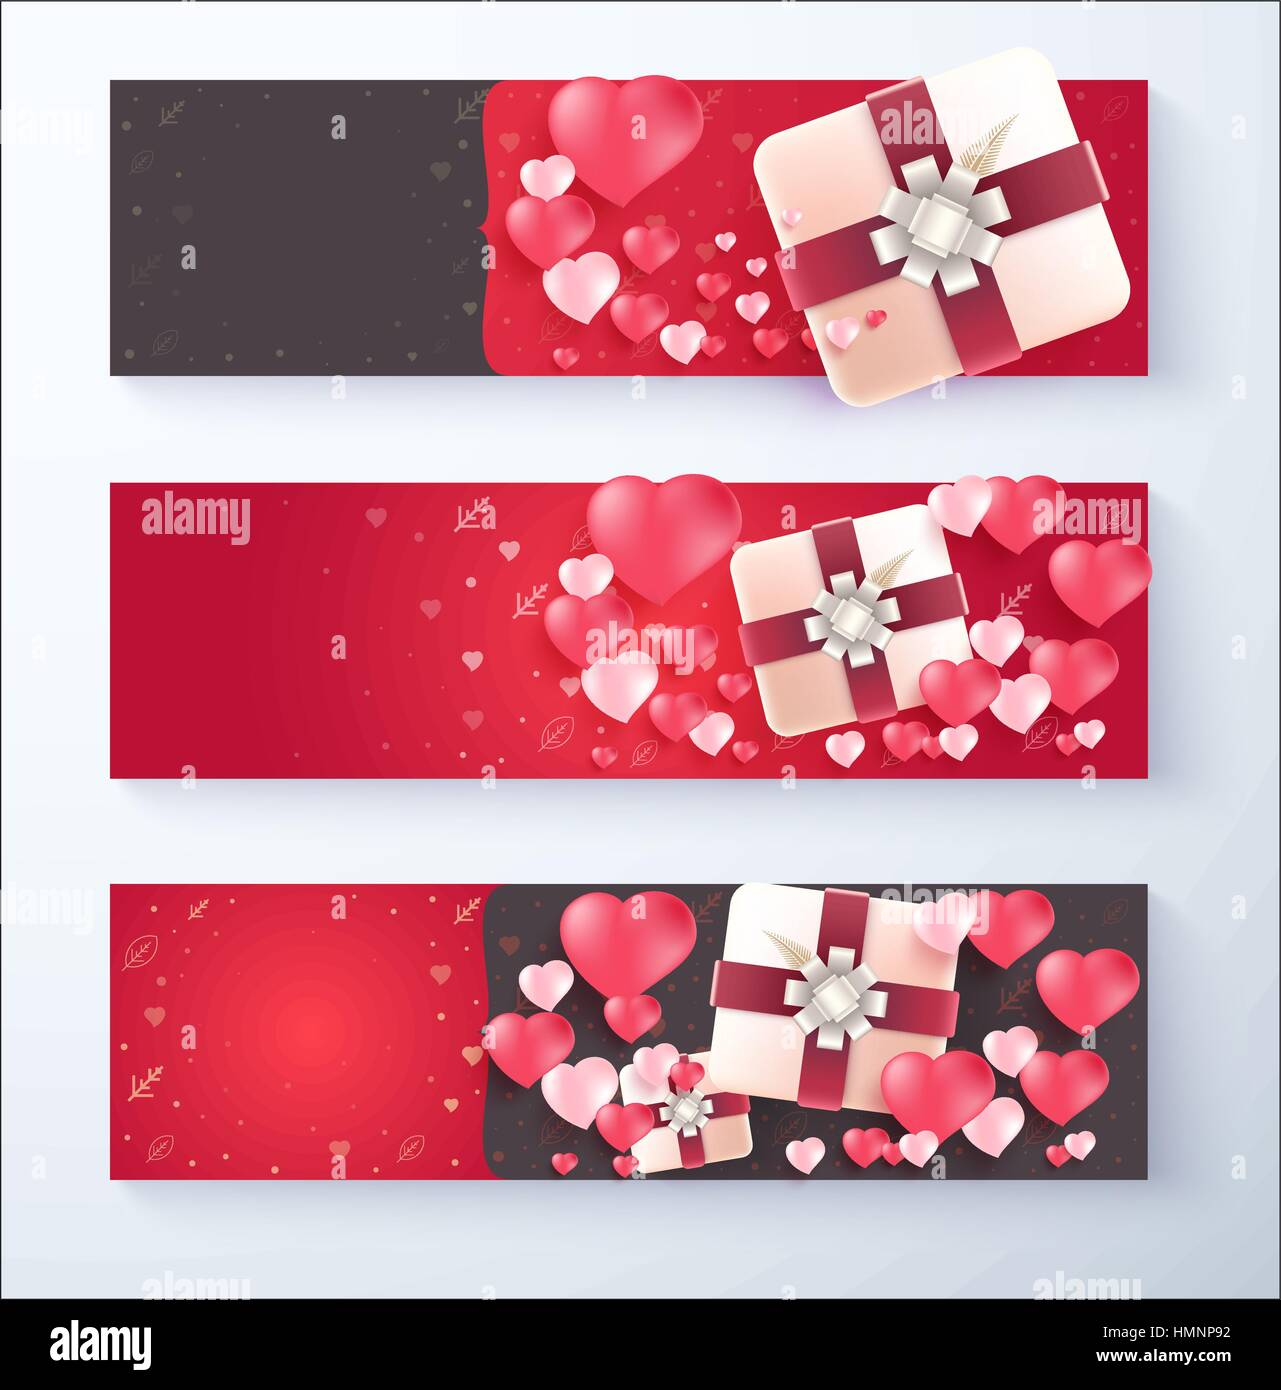 Gift Box Banner For Use Special Offer And Discount Advertise Vector Stock Vector Image Art Alamy